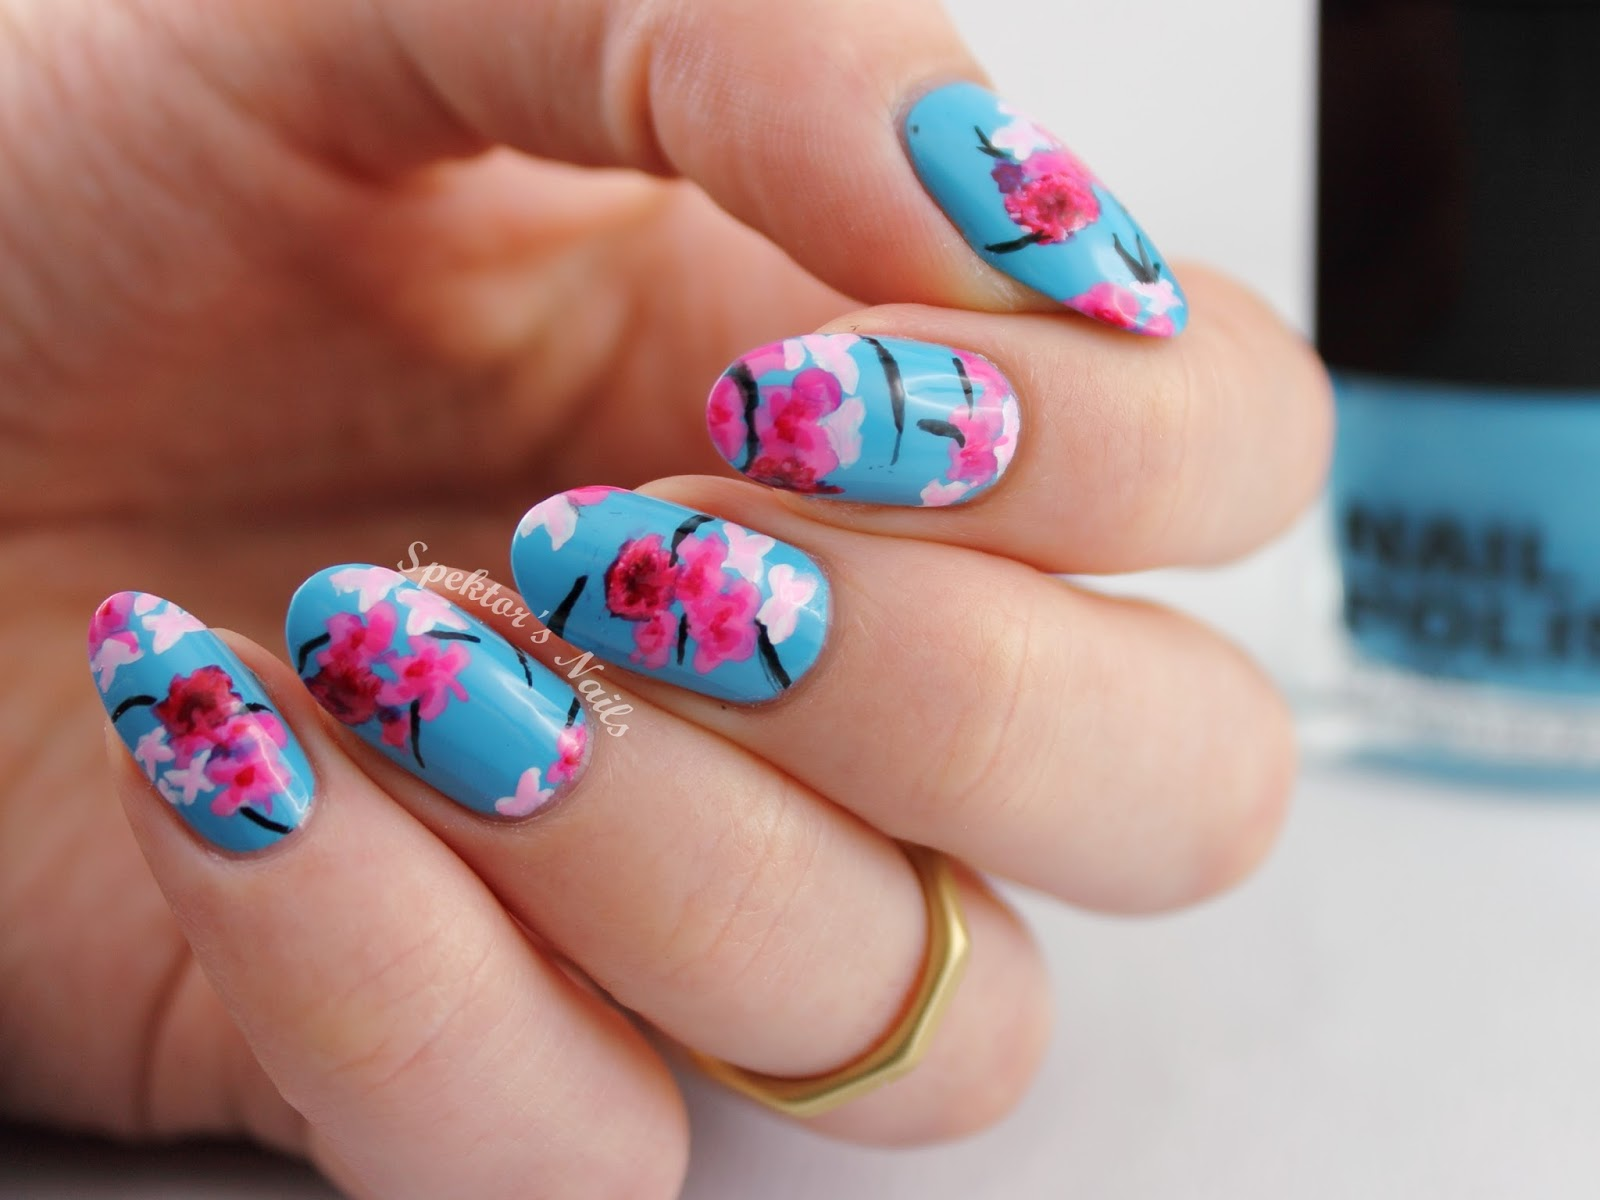 Floral / Cherry Blossom Nail Art inspired by H&M